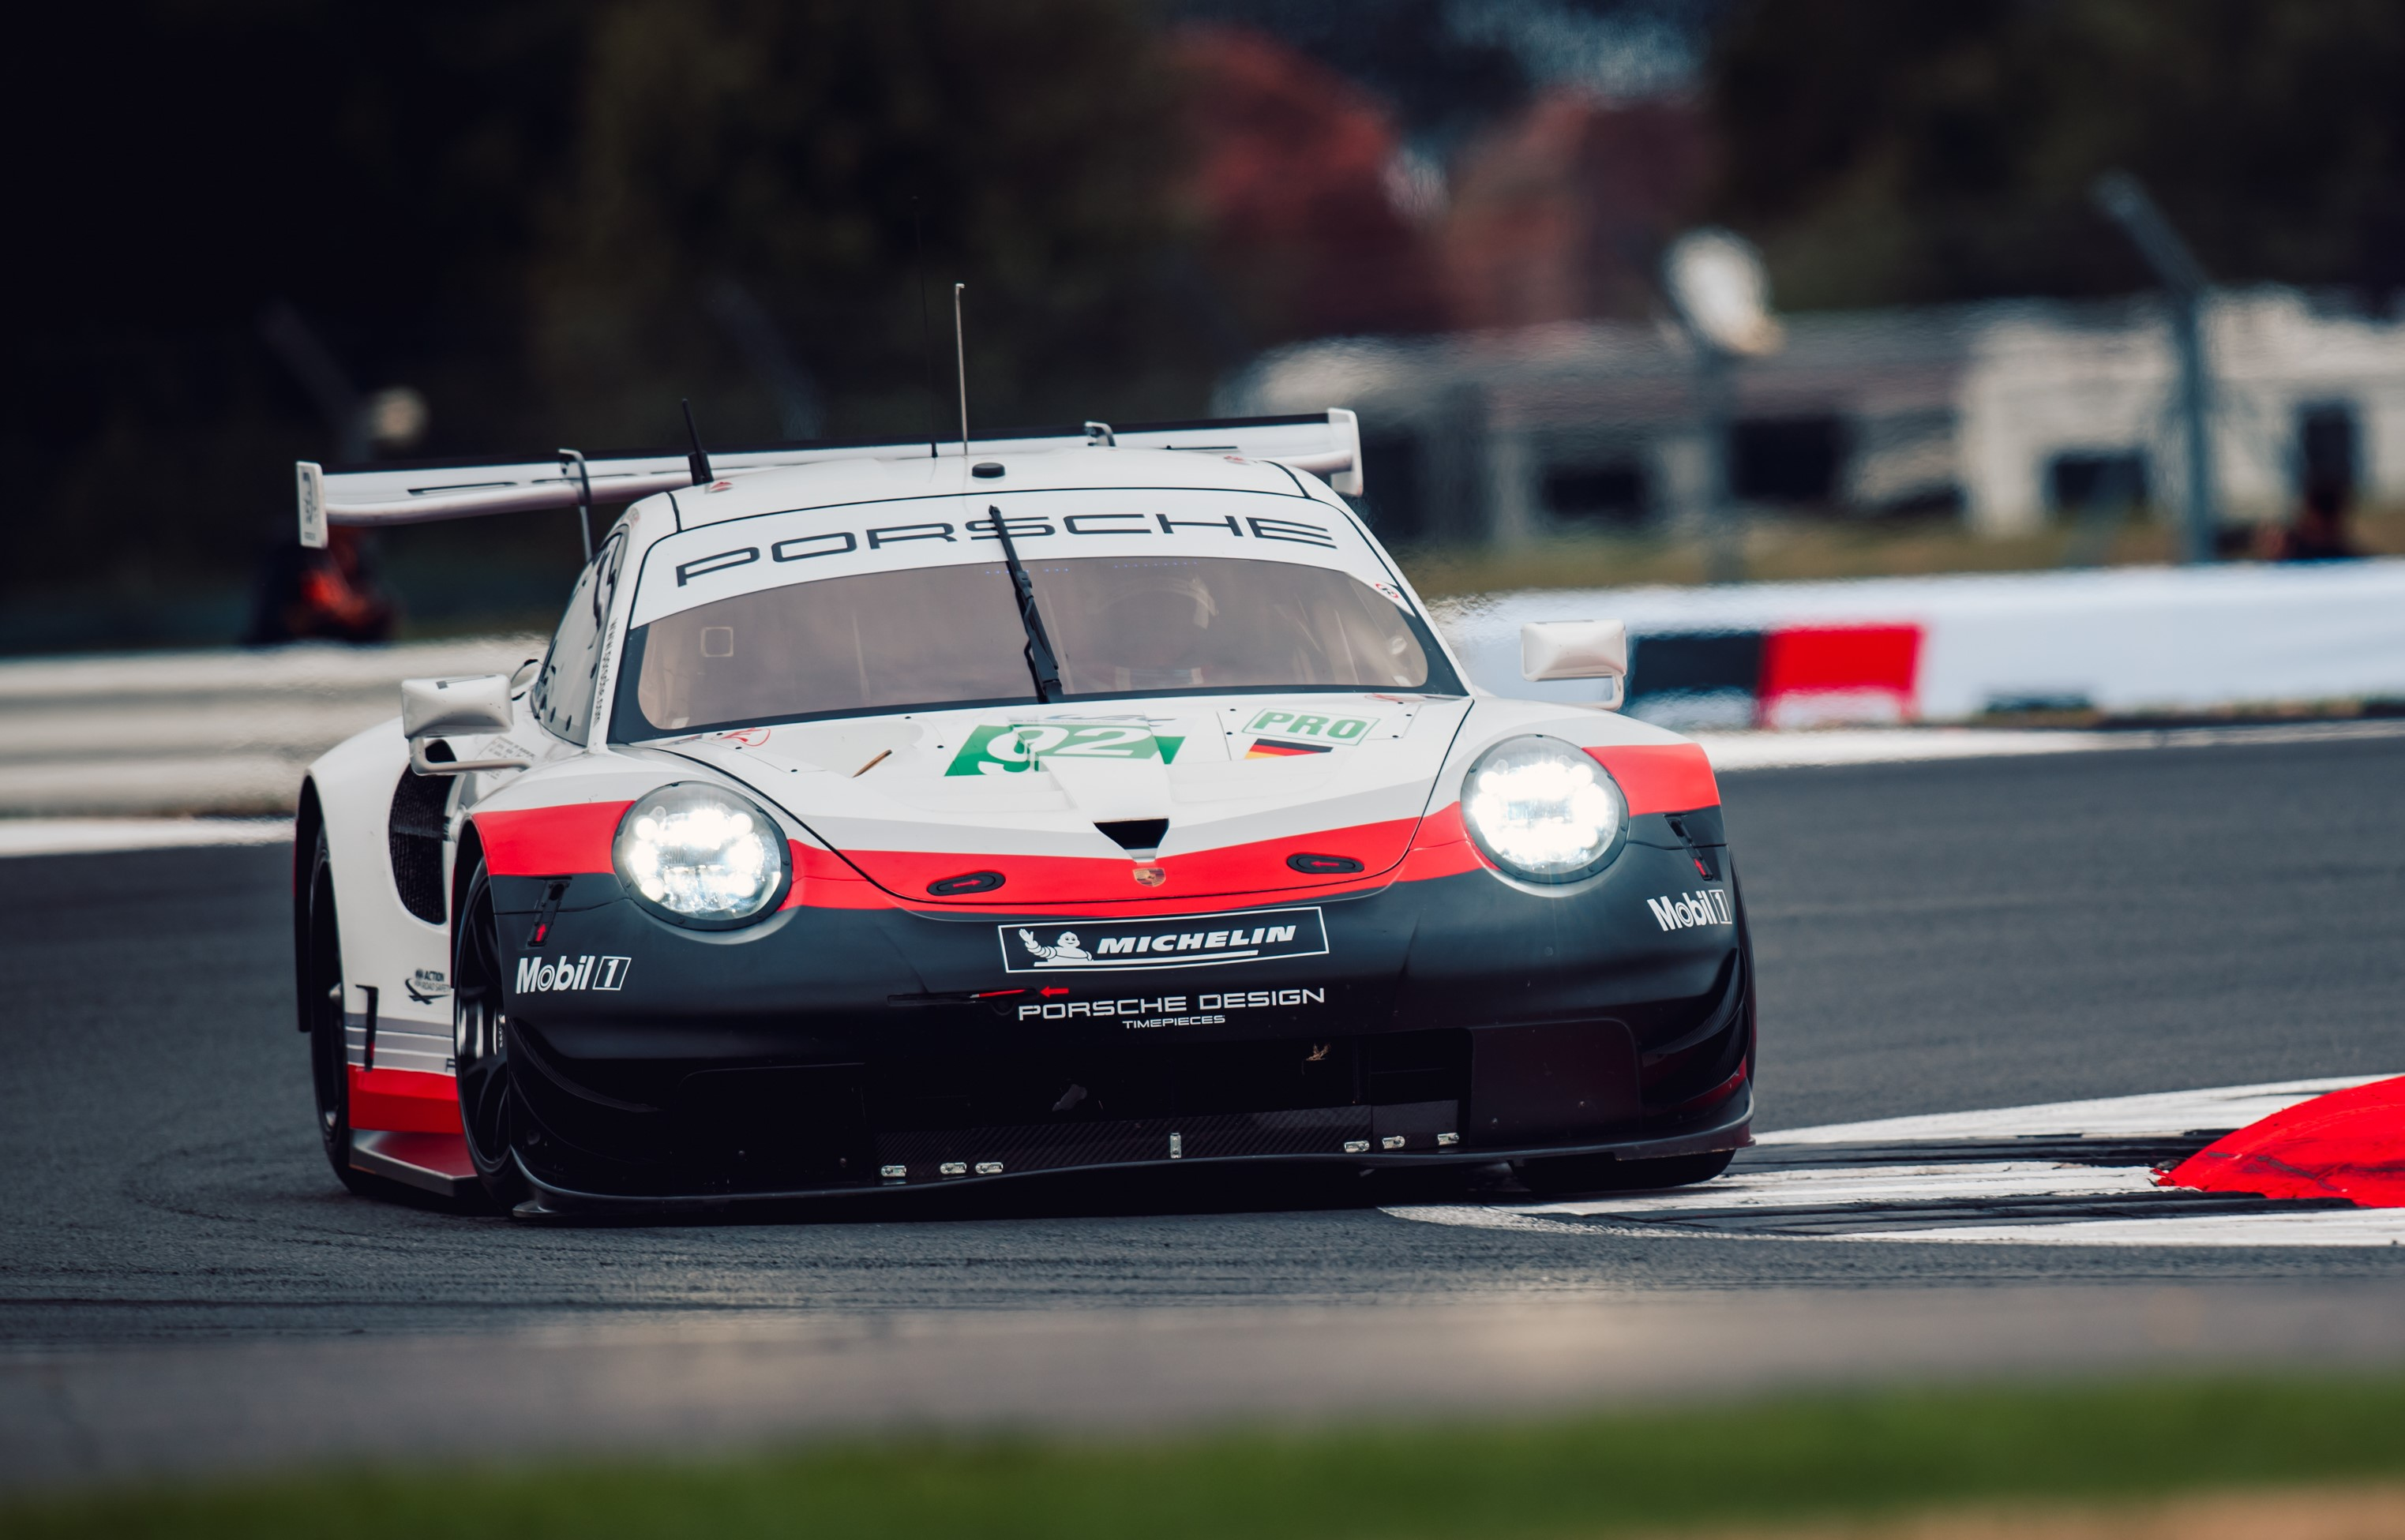 Porsche will focus on GT racing for now.